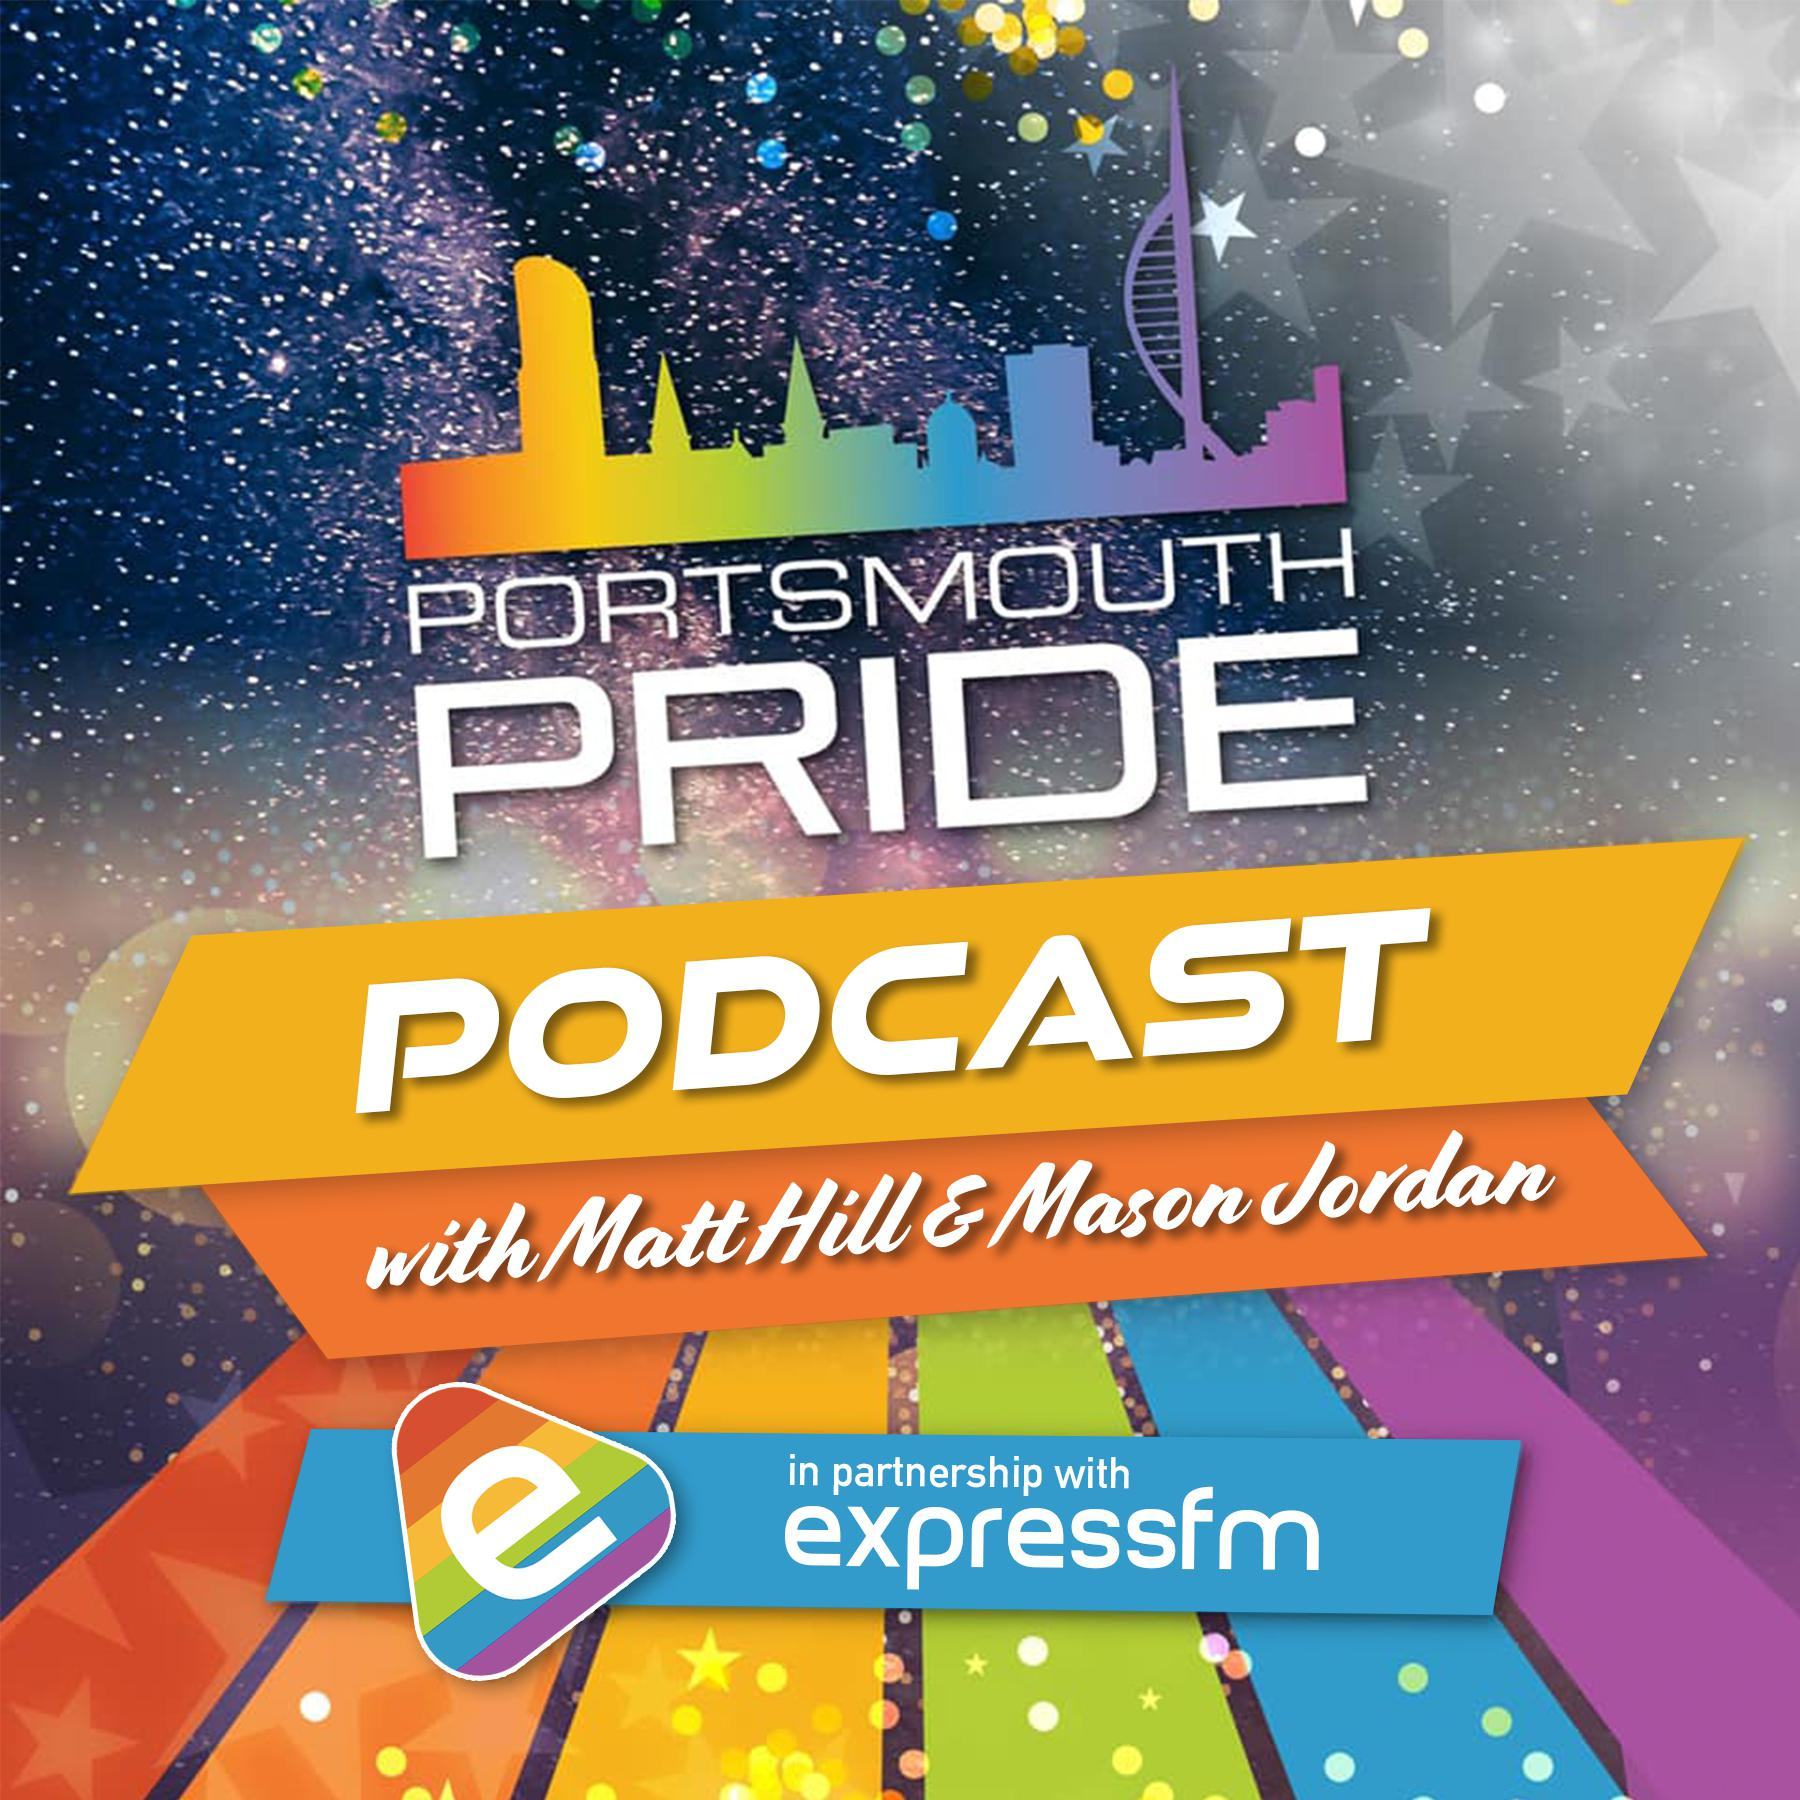 Portsmouth Pride Podcast